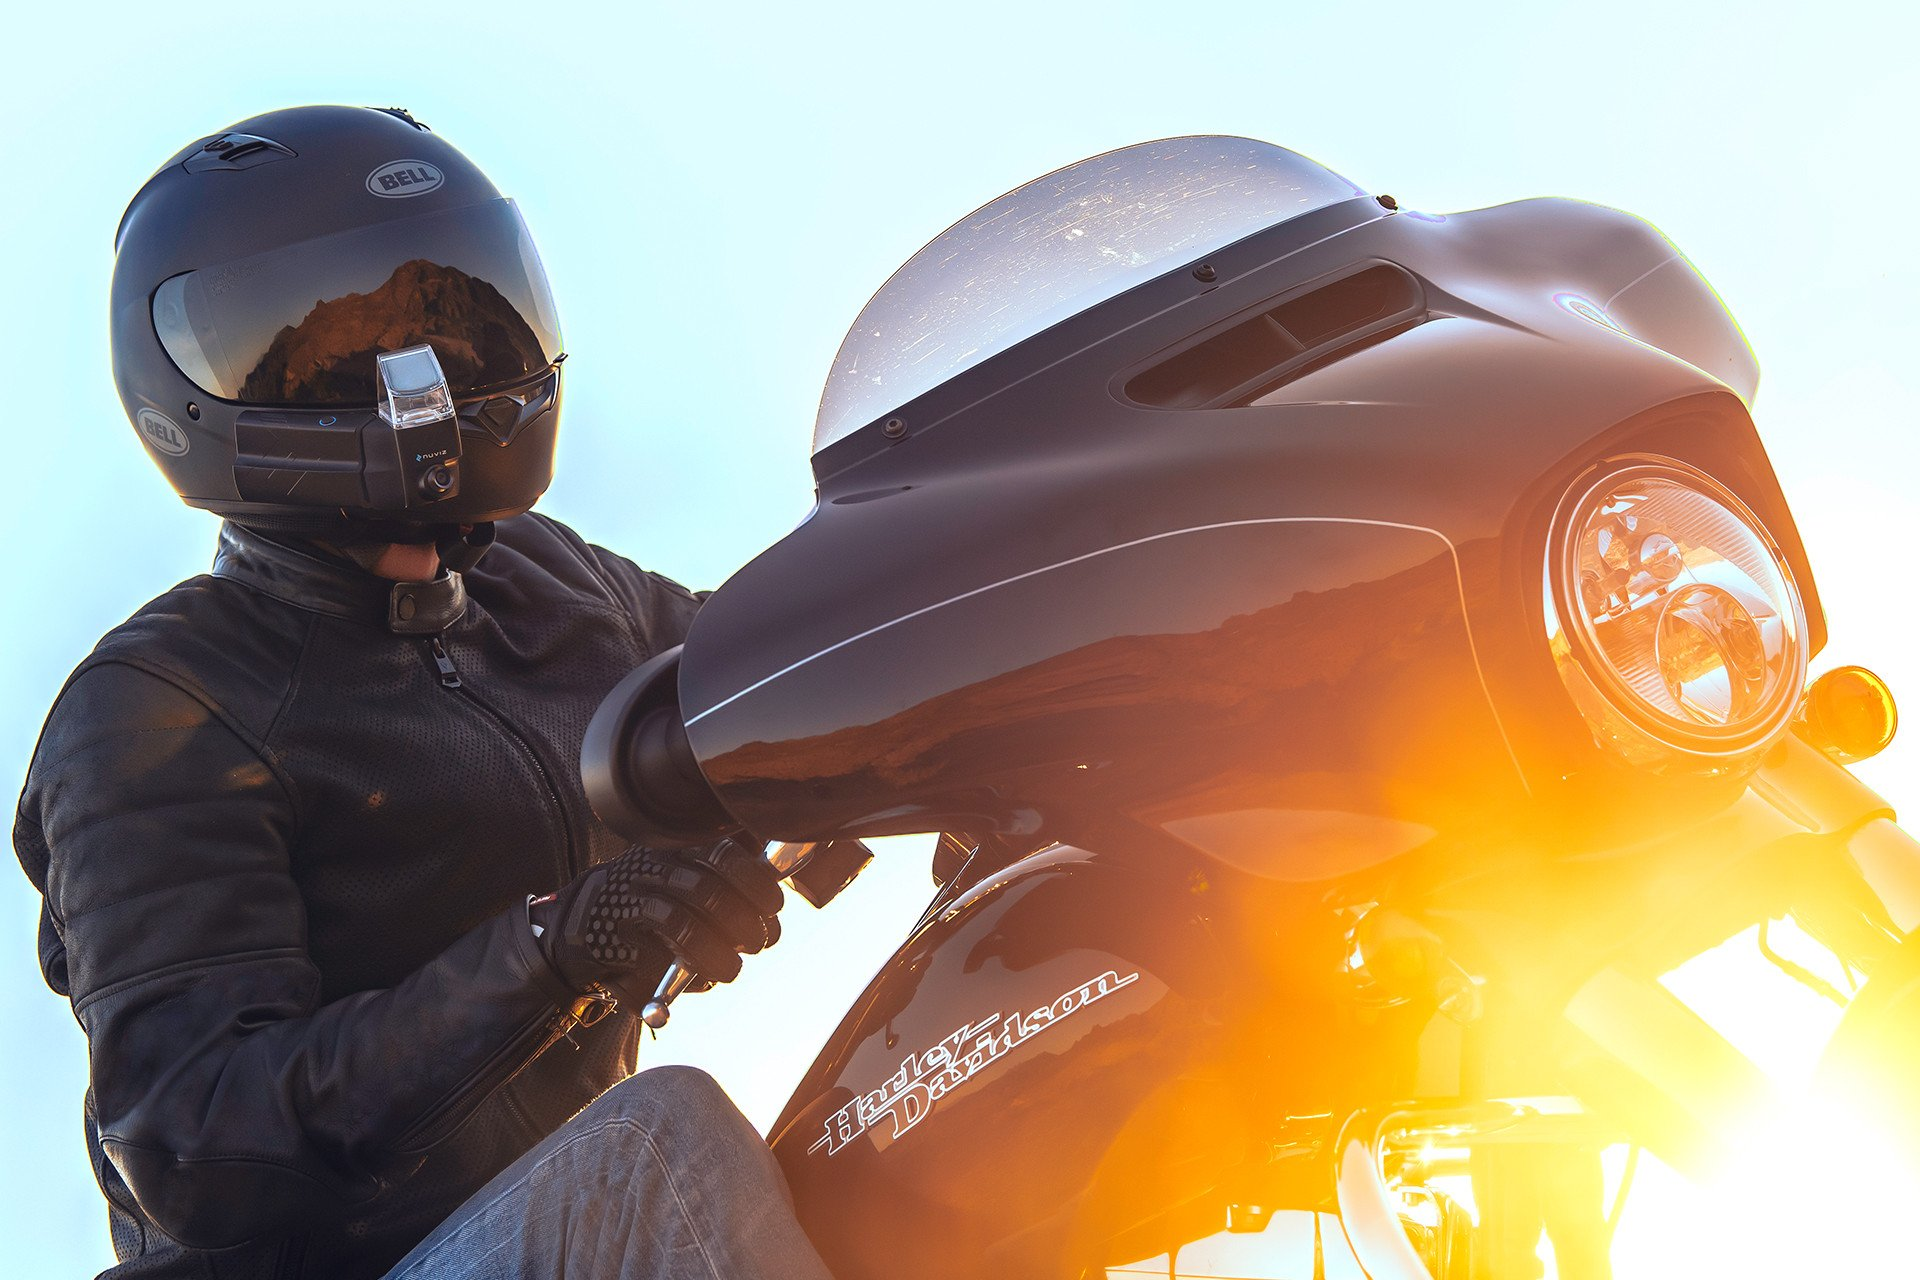 Nuviz debuts fully-integrated Head-up Display (HUD) system for motorcyclists